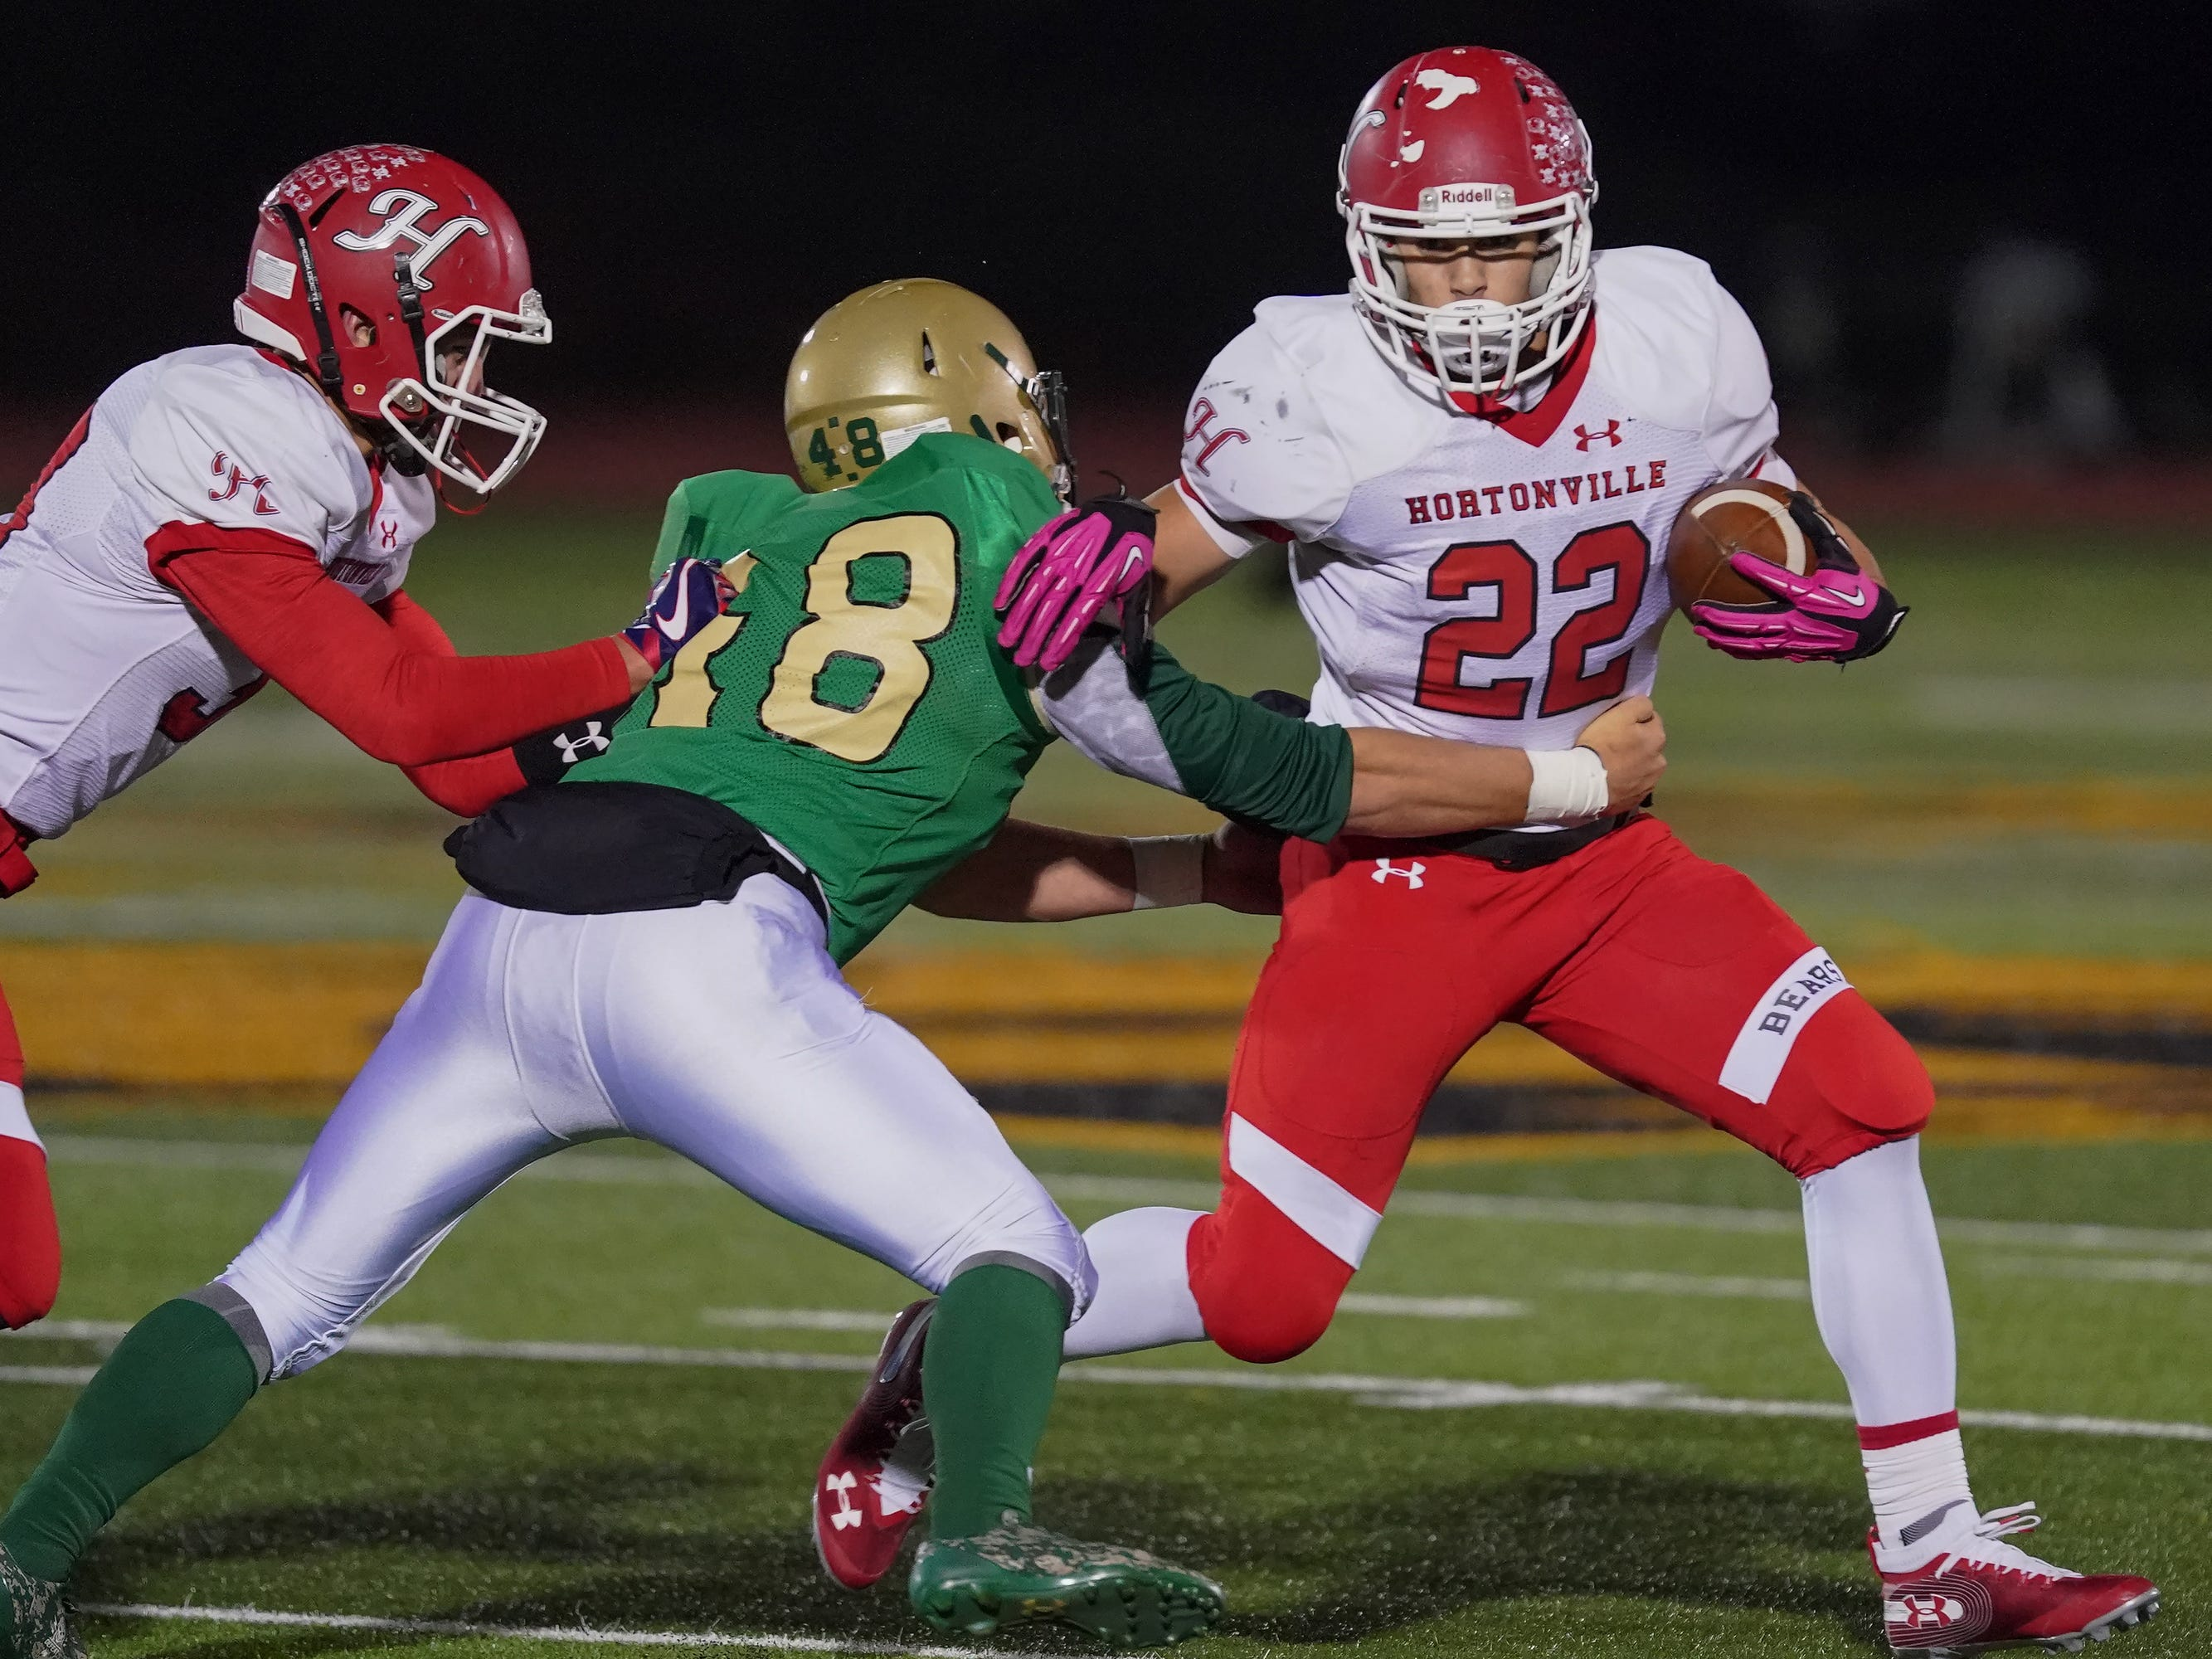 Logan Boese (48) of Oshkosh North tries to bring down Jose Concepcion (22) of Hortonville. The Oshkosh North Spartans hosted the Hortonville Polar Bears in an FVA-South conference matchup Friday evening, October 12, 2018 at J. J. Keller Field at Titan Stadium.